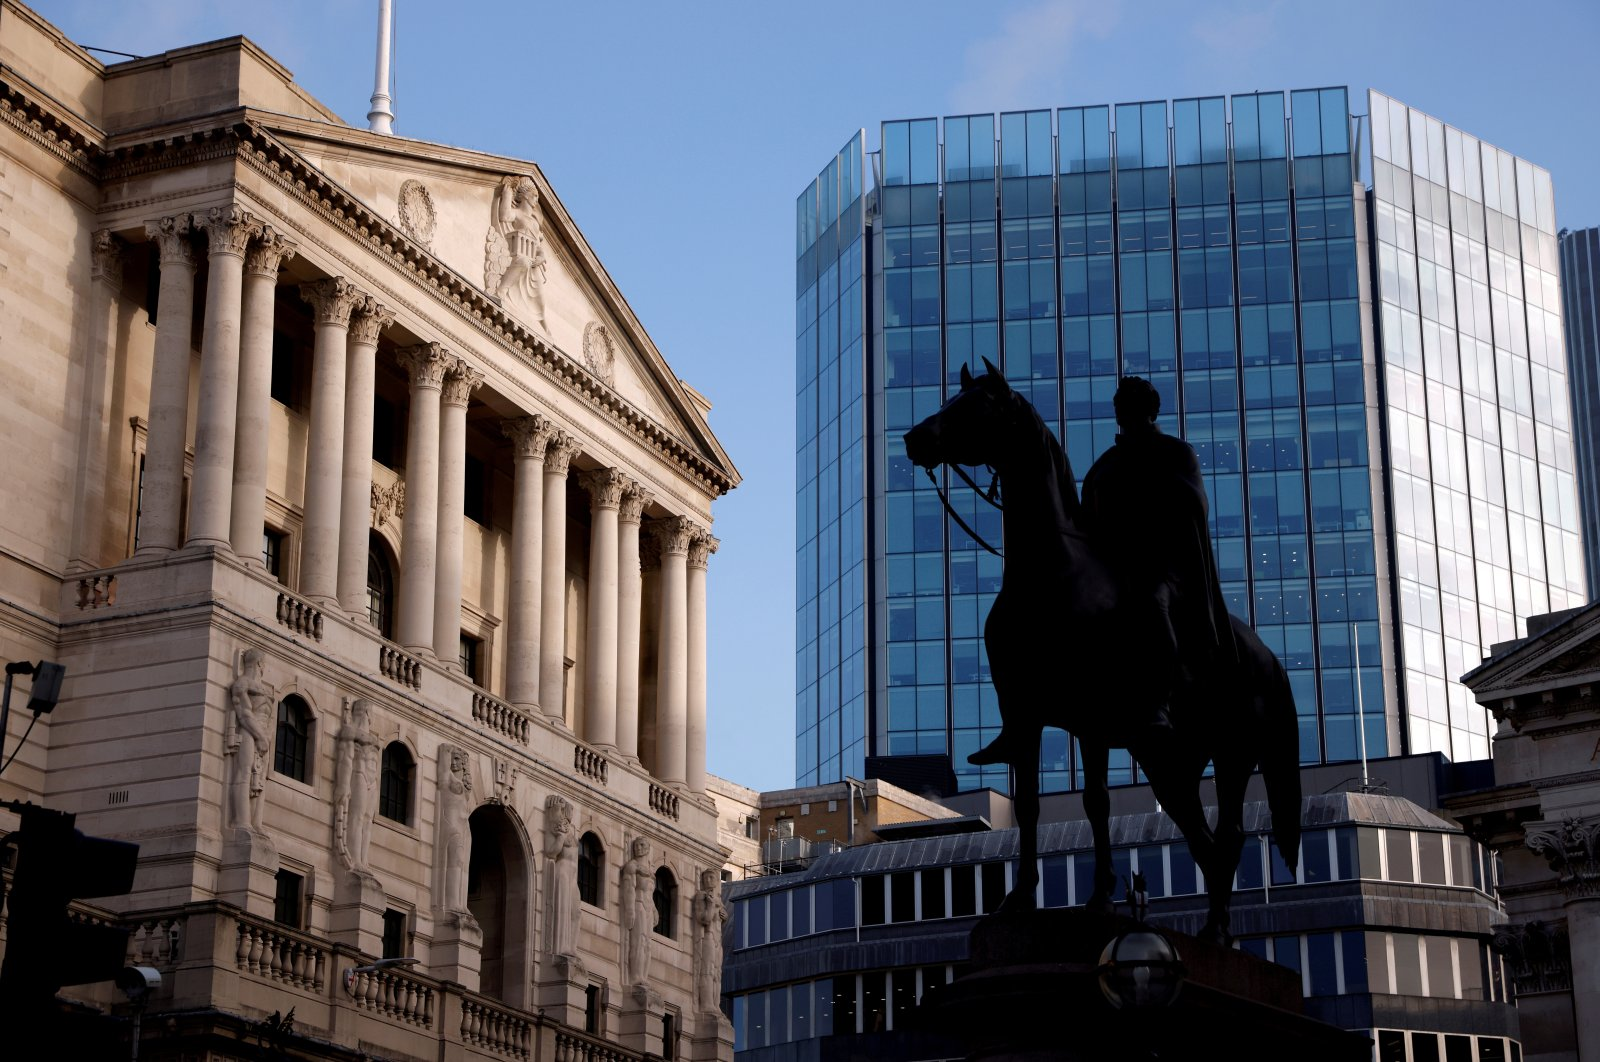 A general view shows The Bank of England in the City of London financial district in London, Britain, Nov. 5, 2020. (Reuters Photo)